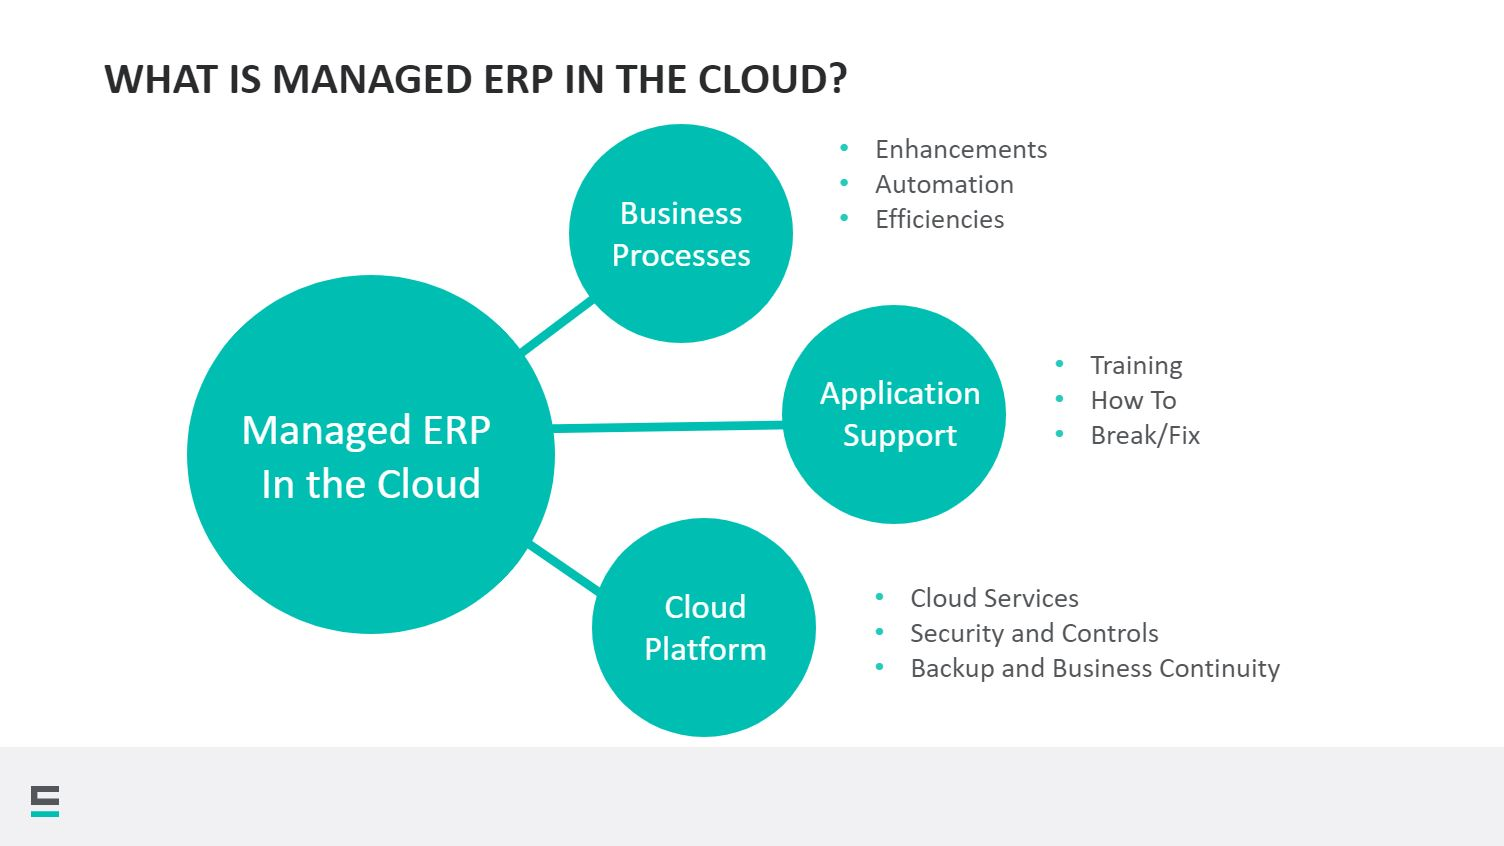 ManagedERP-What is Managed ERP in the Cloud